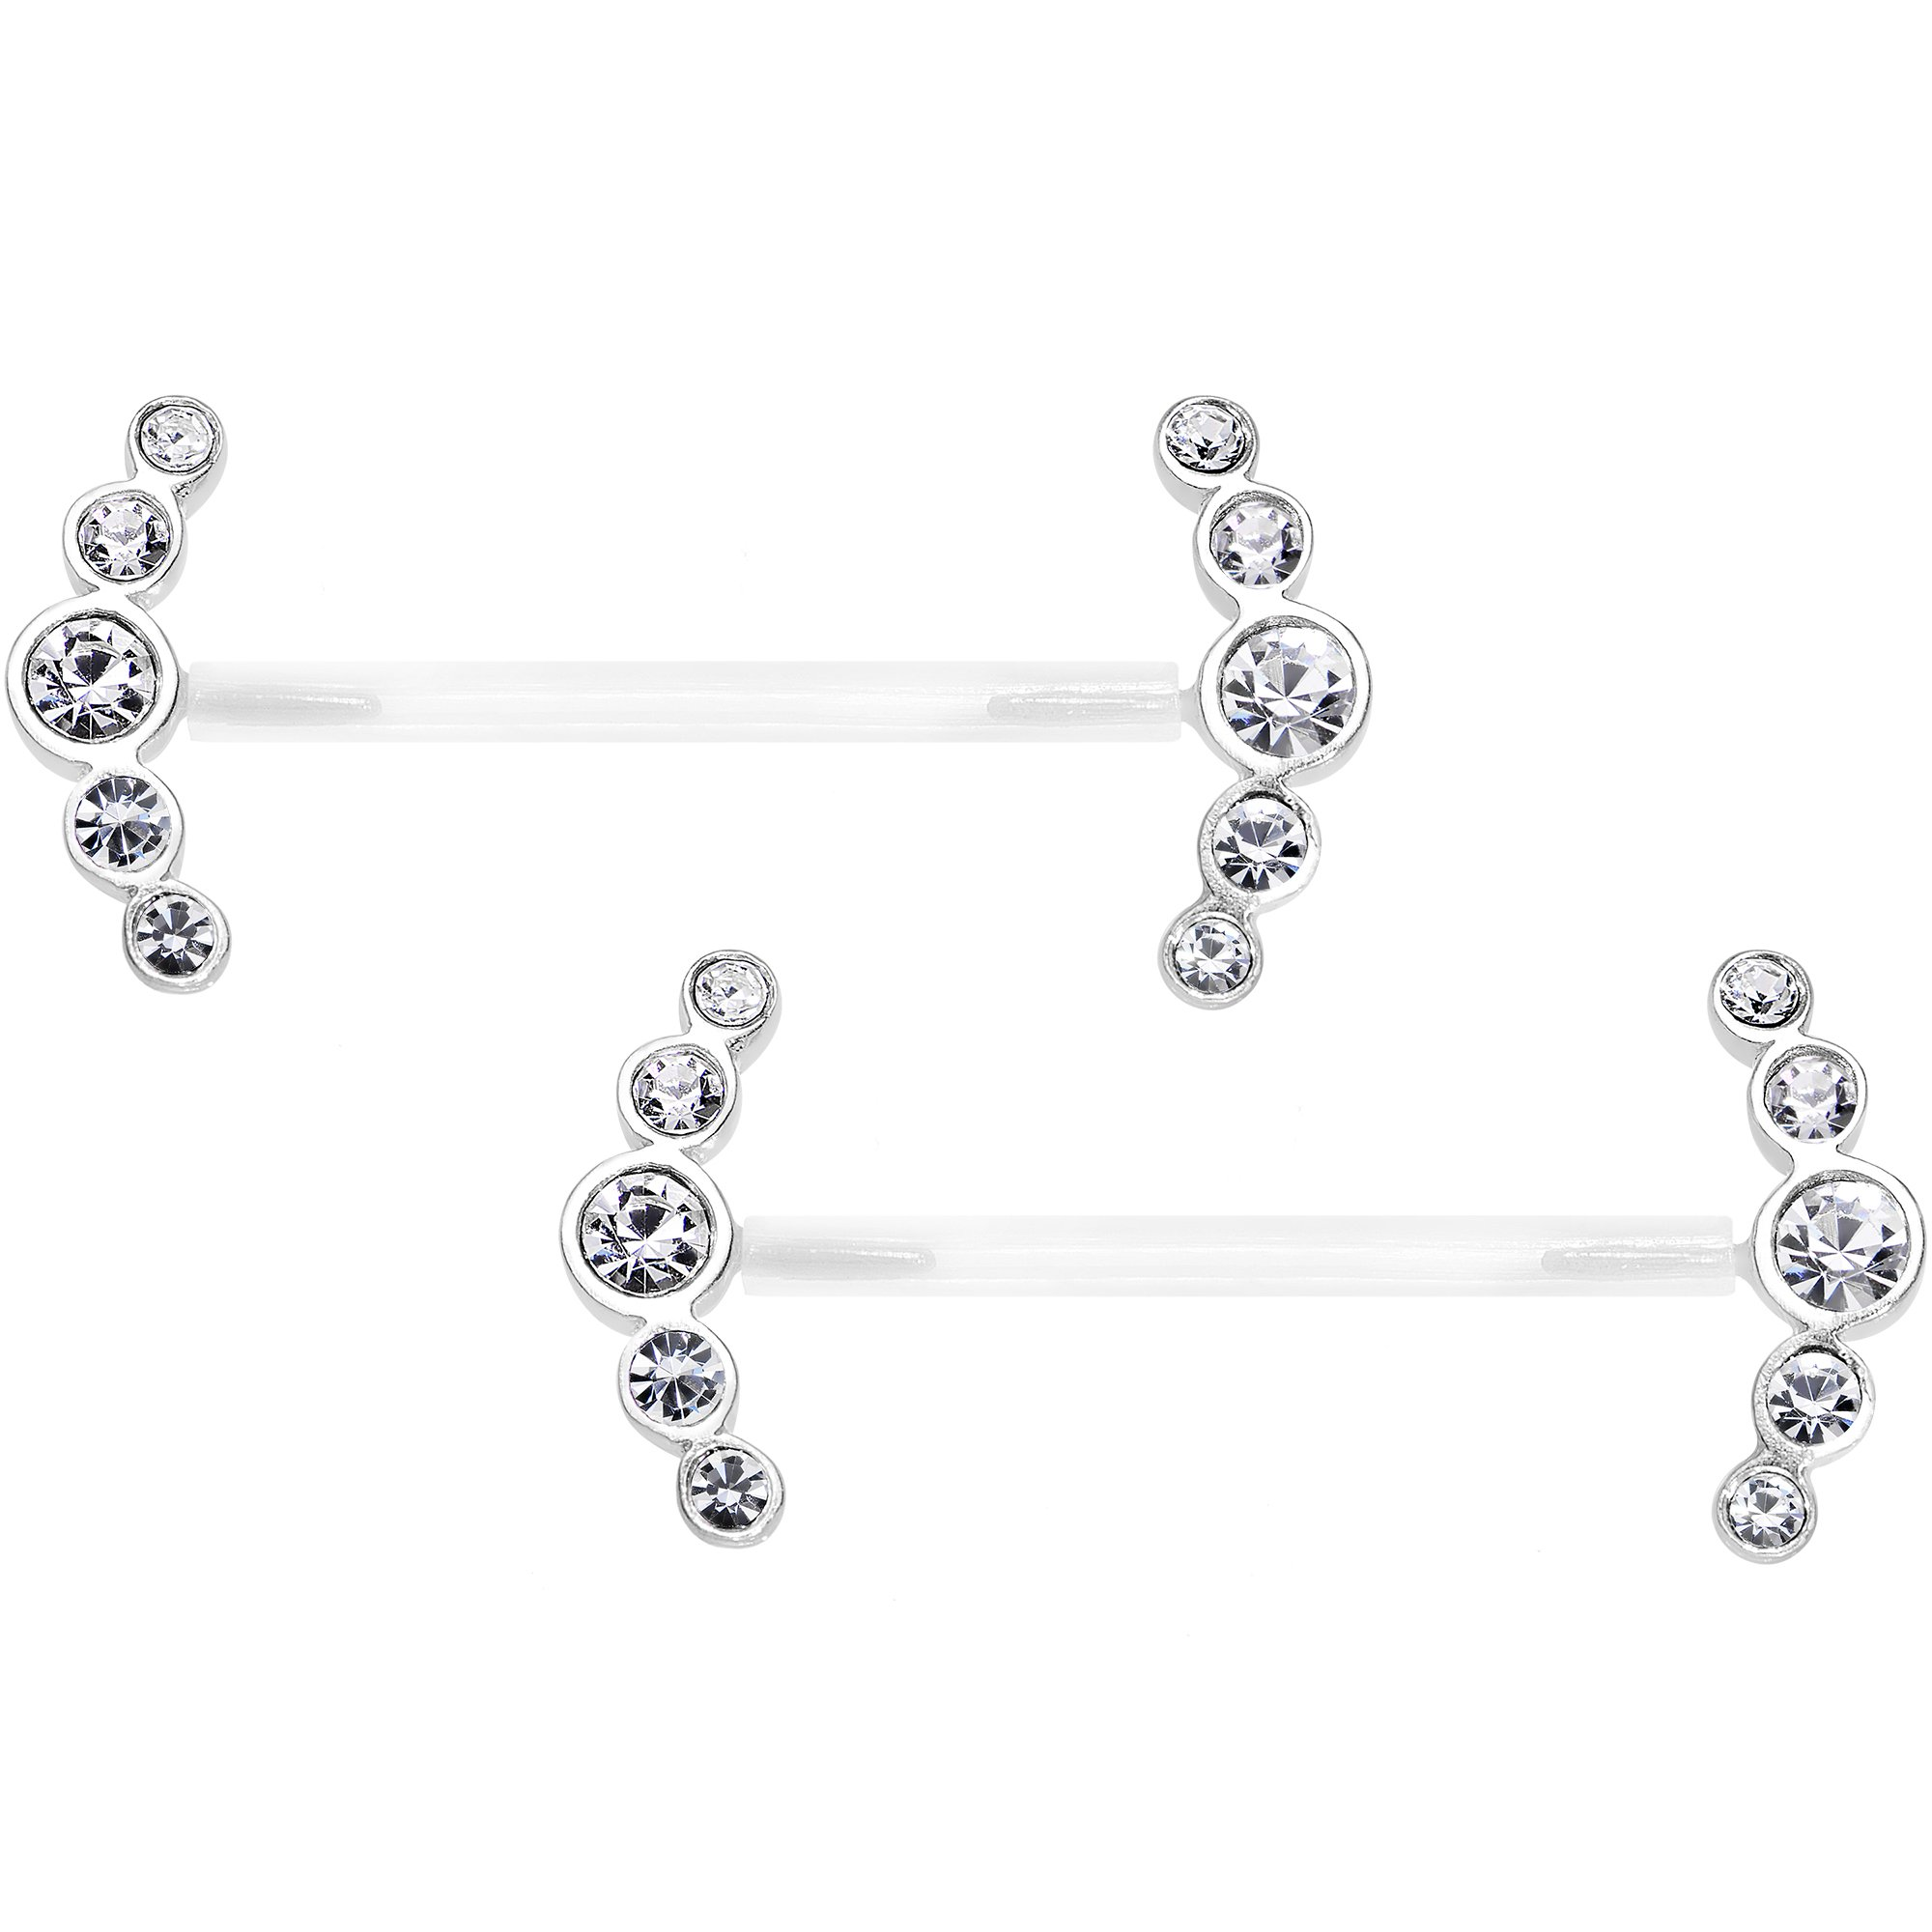 Body Candy Bioplast 925 Sterling Silver Clear Round Curve Nipple Ring Set of 2 14 Gauge 13/16''